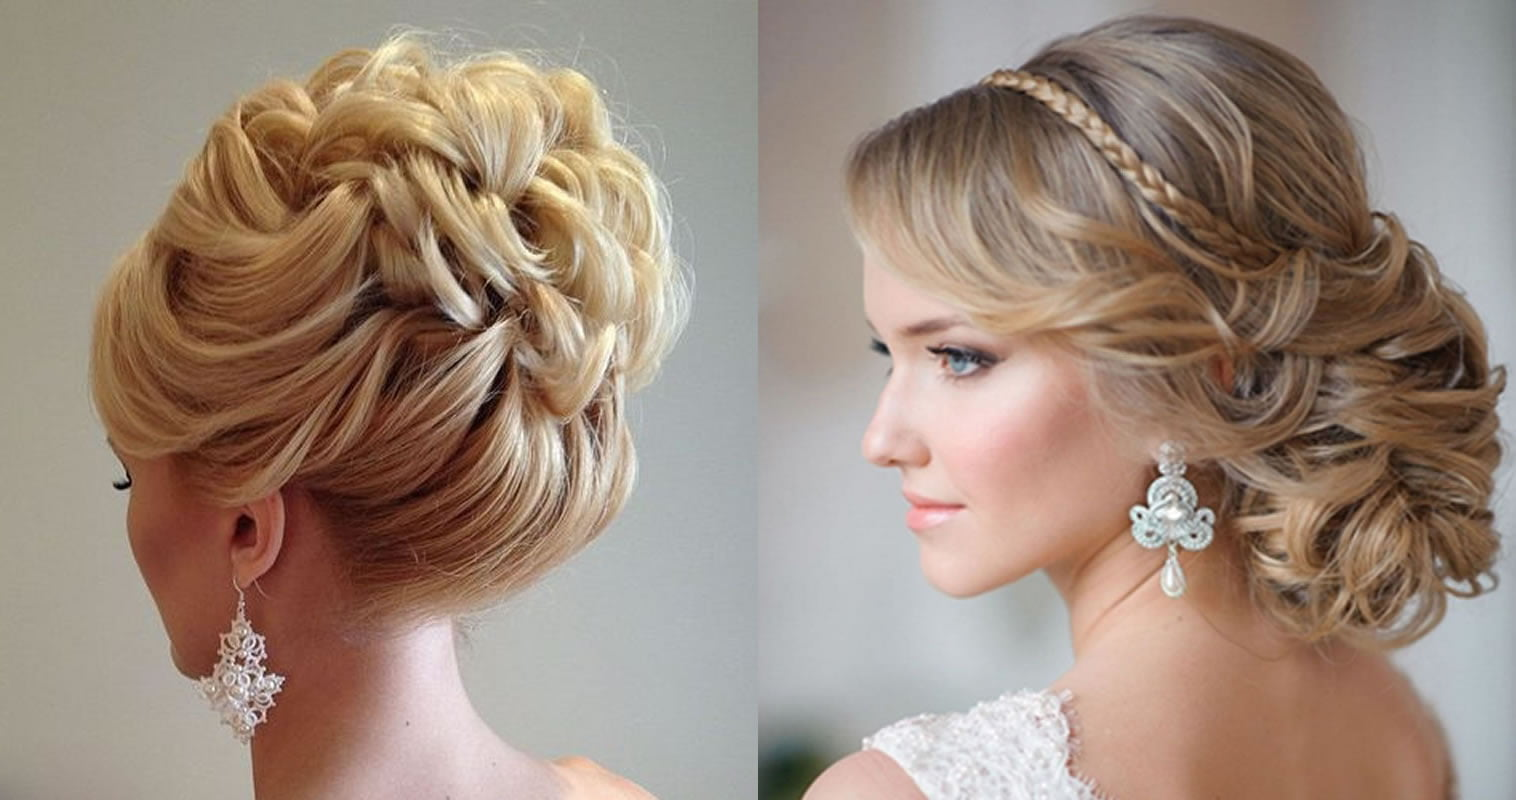 Hairstyles Of 2019: Updo Wedding Hairstyles 2019